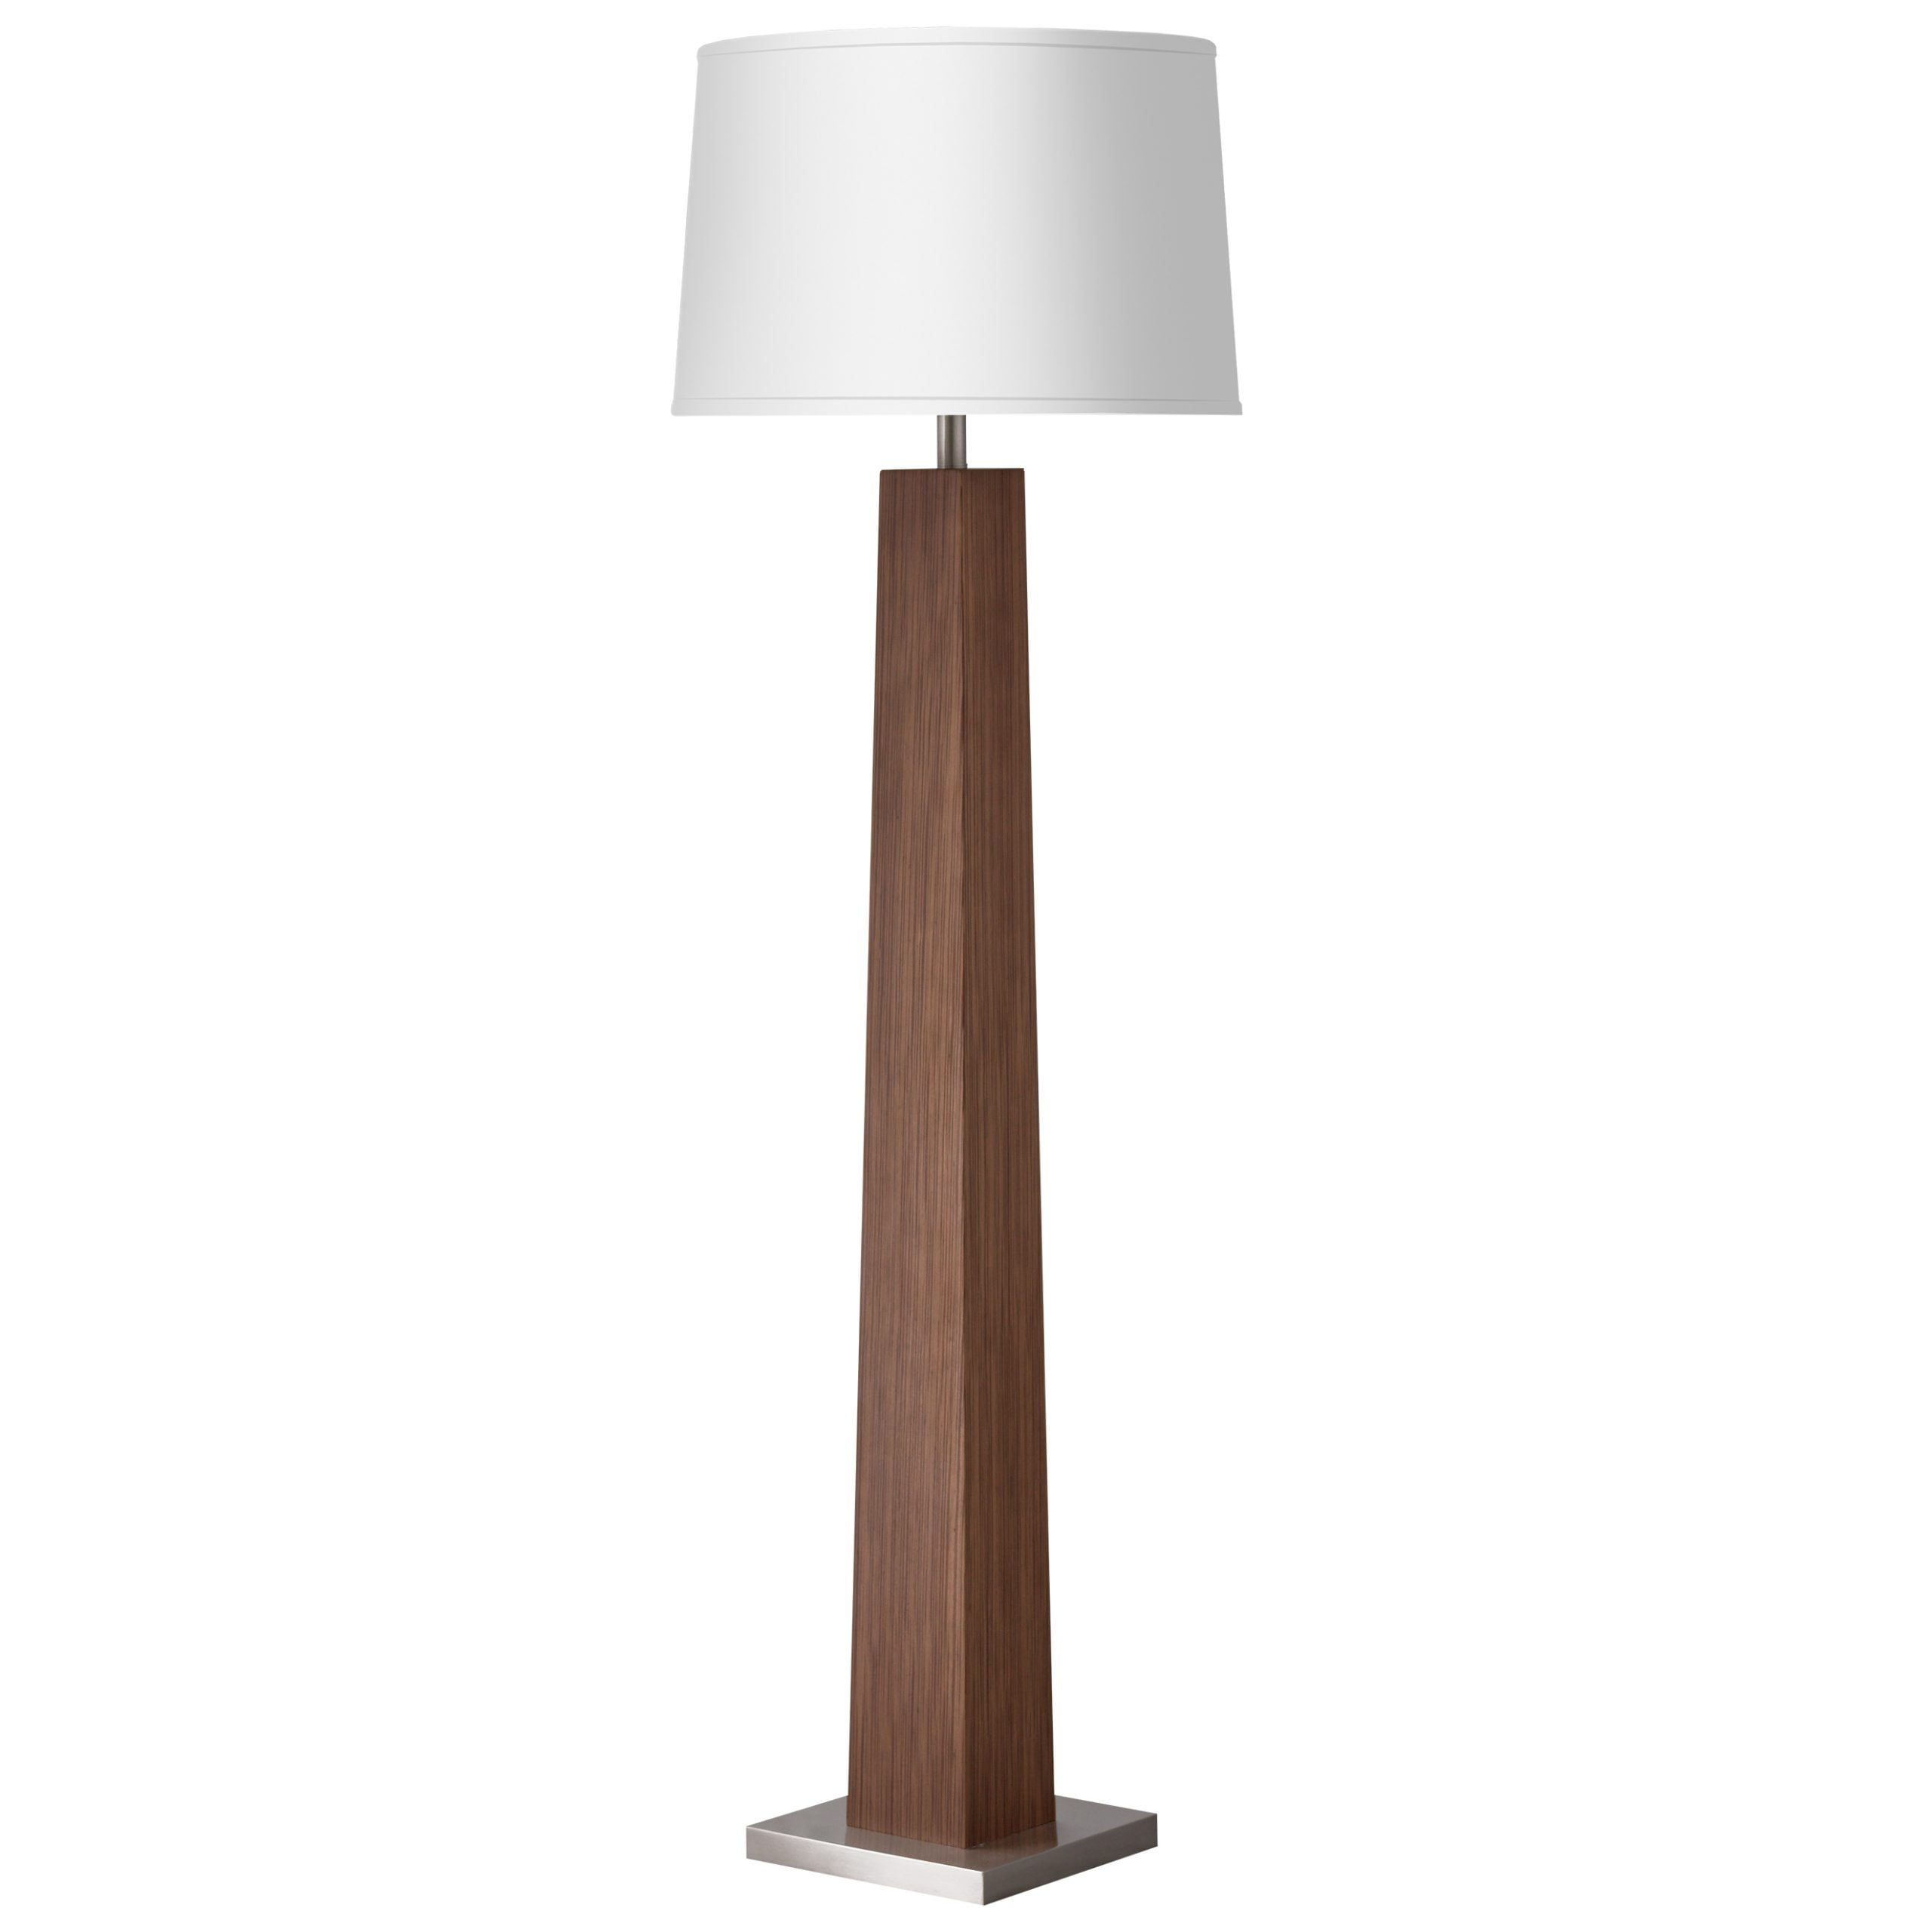 Sleep Floor Lamp